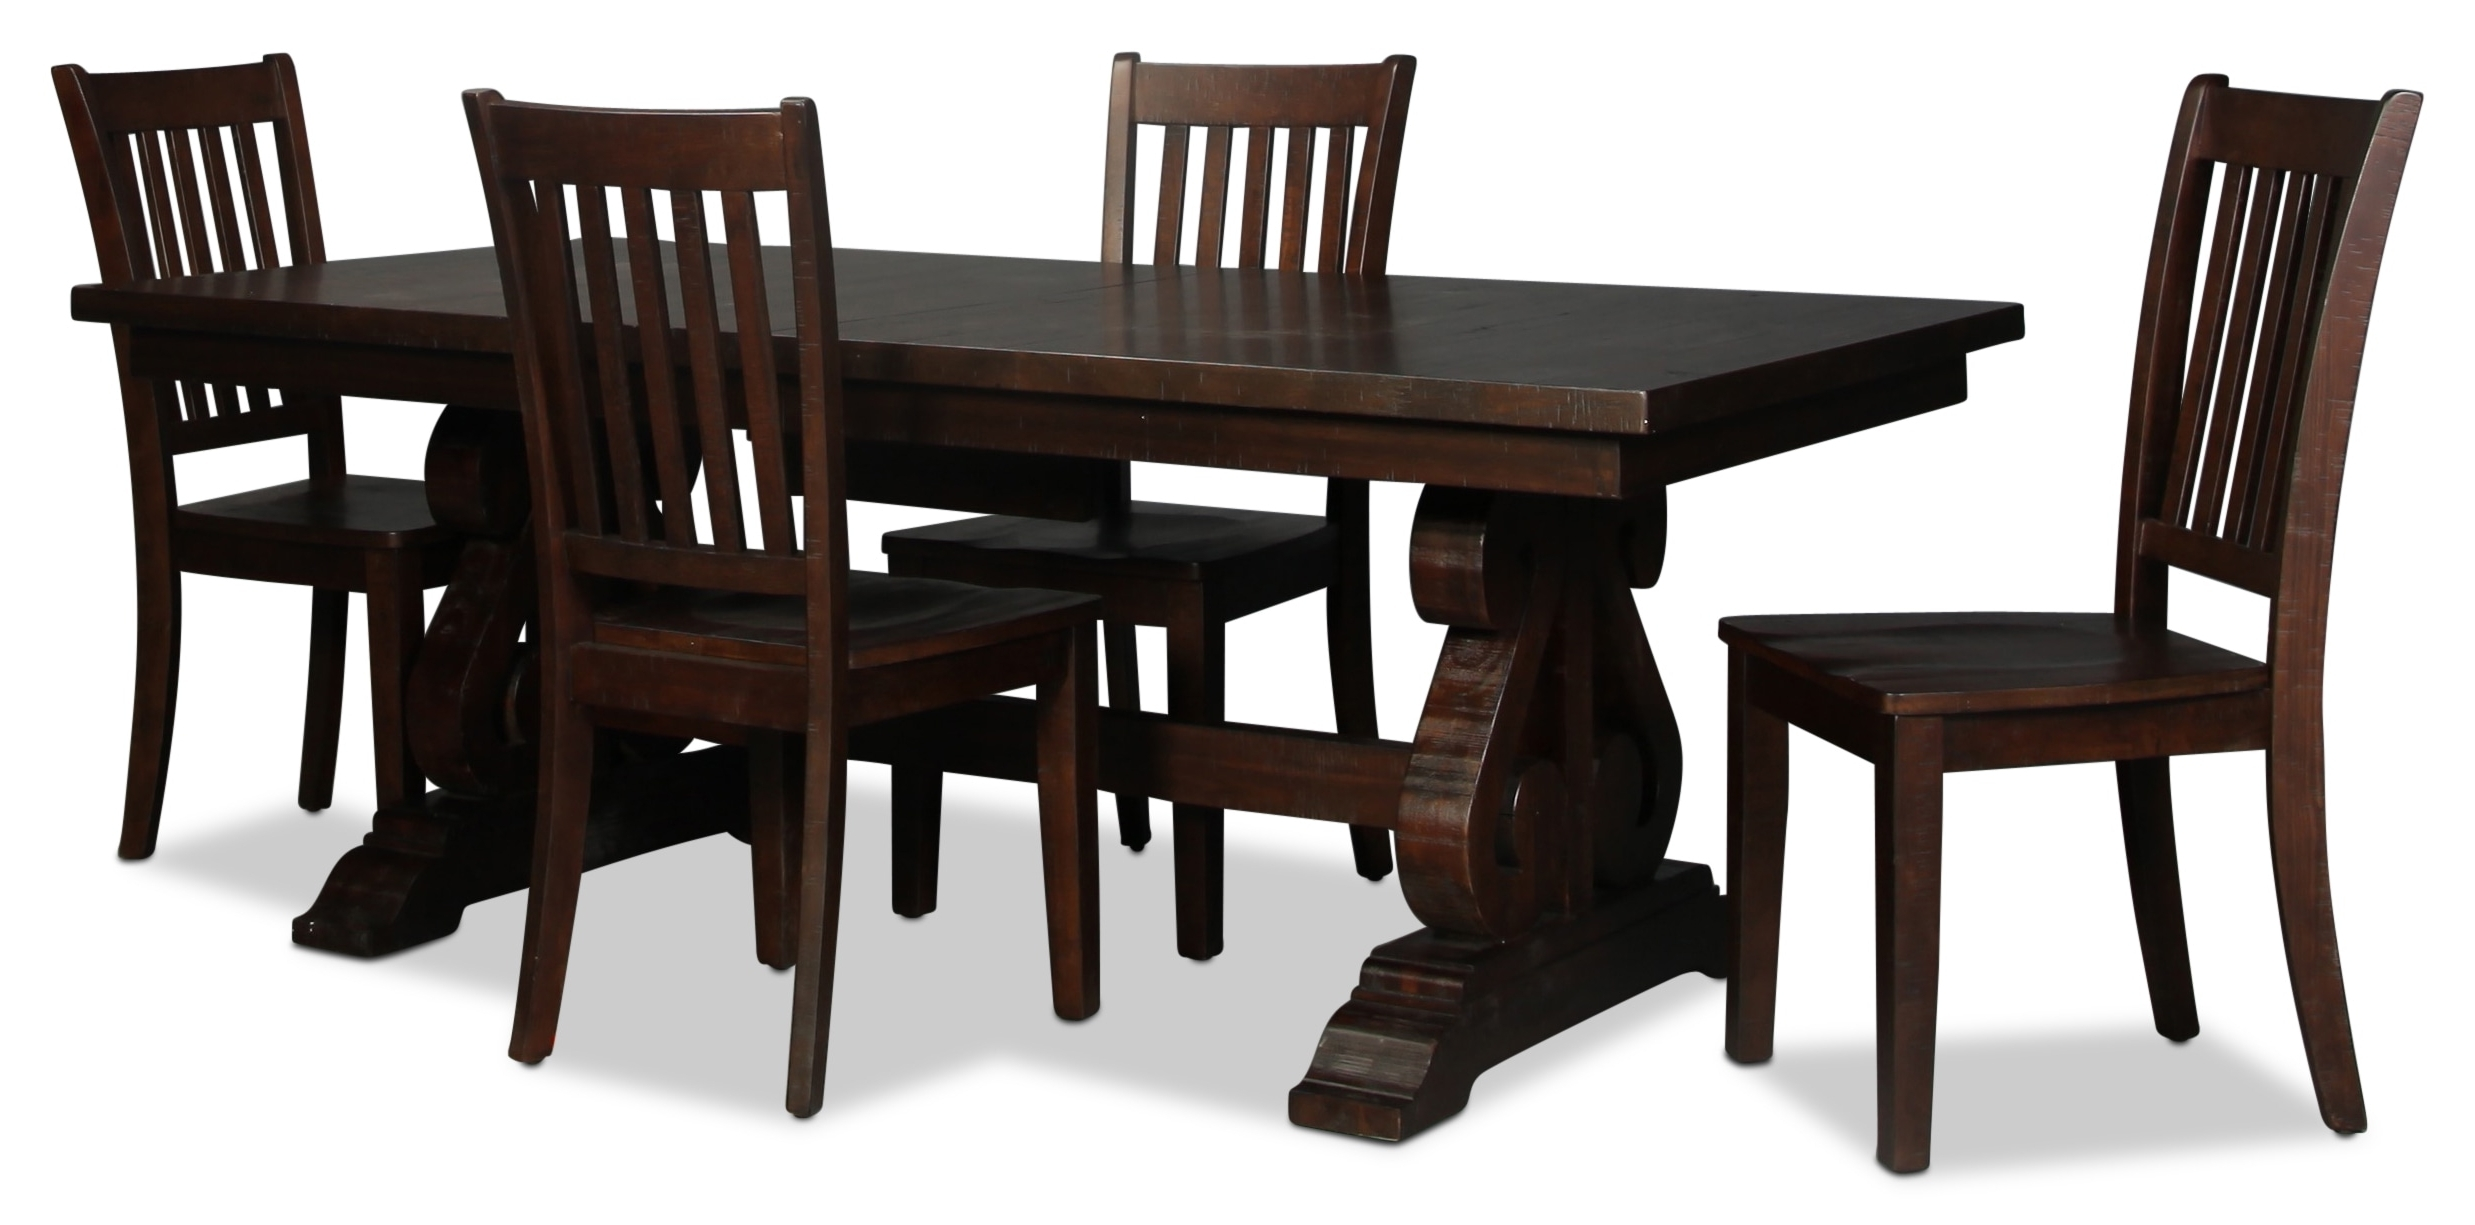 2018 Hudson Dining Tables And Chairs Pertaining To Hudson Table And 4 Side Chairs – Walnut (Gallery 4 of 25)